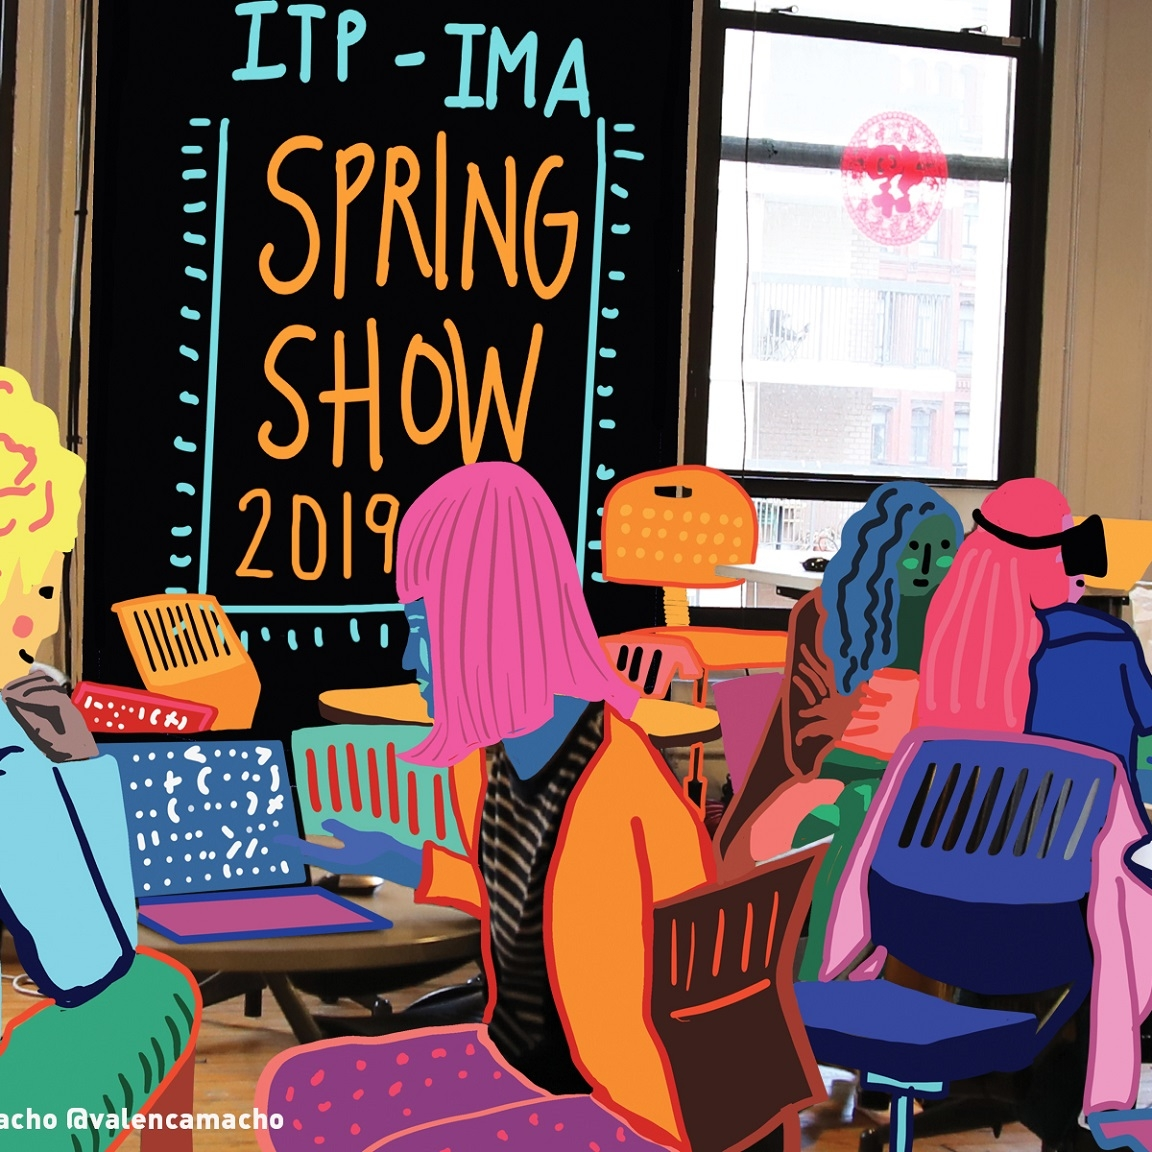 Image of ITP Spring Show 2019 poster.